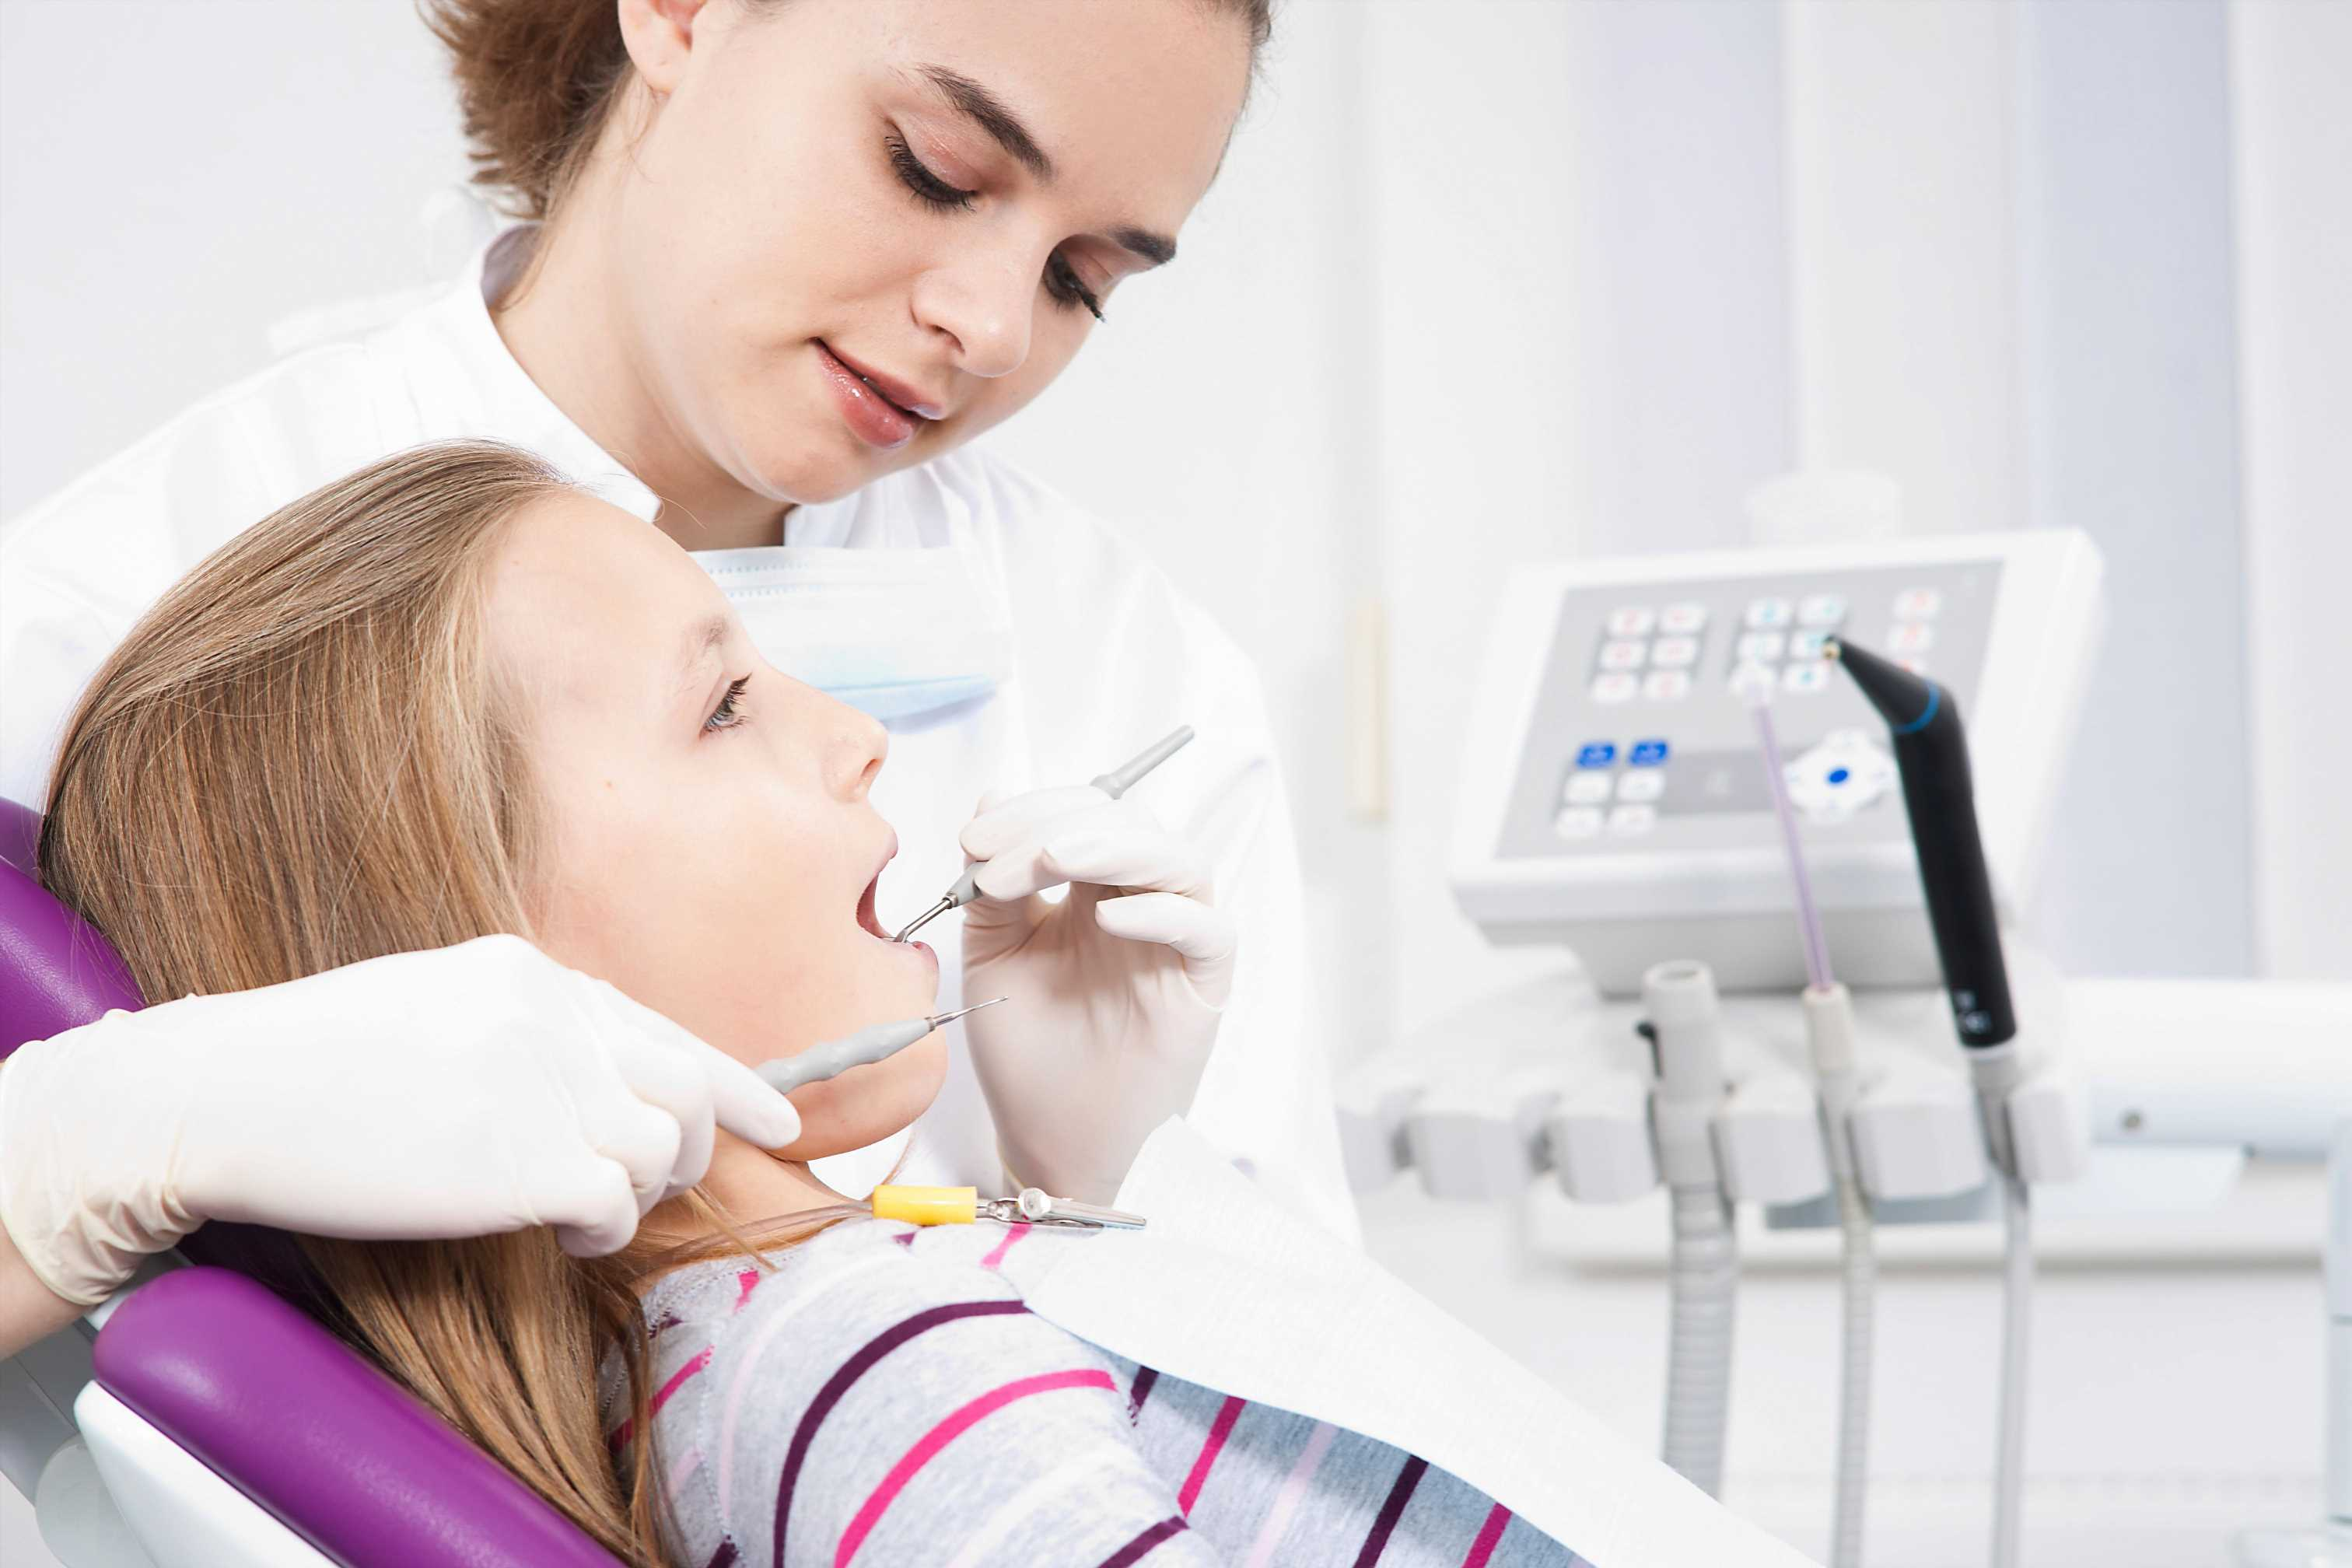 Five million kids have NOT had a dental check-up in the past 12 months